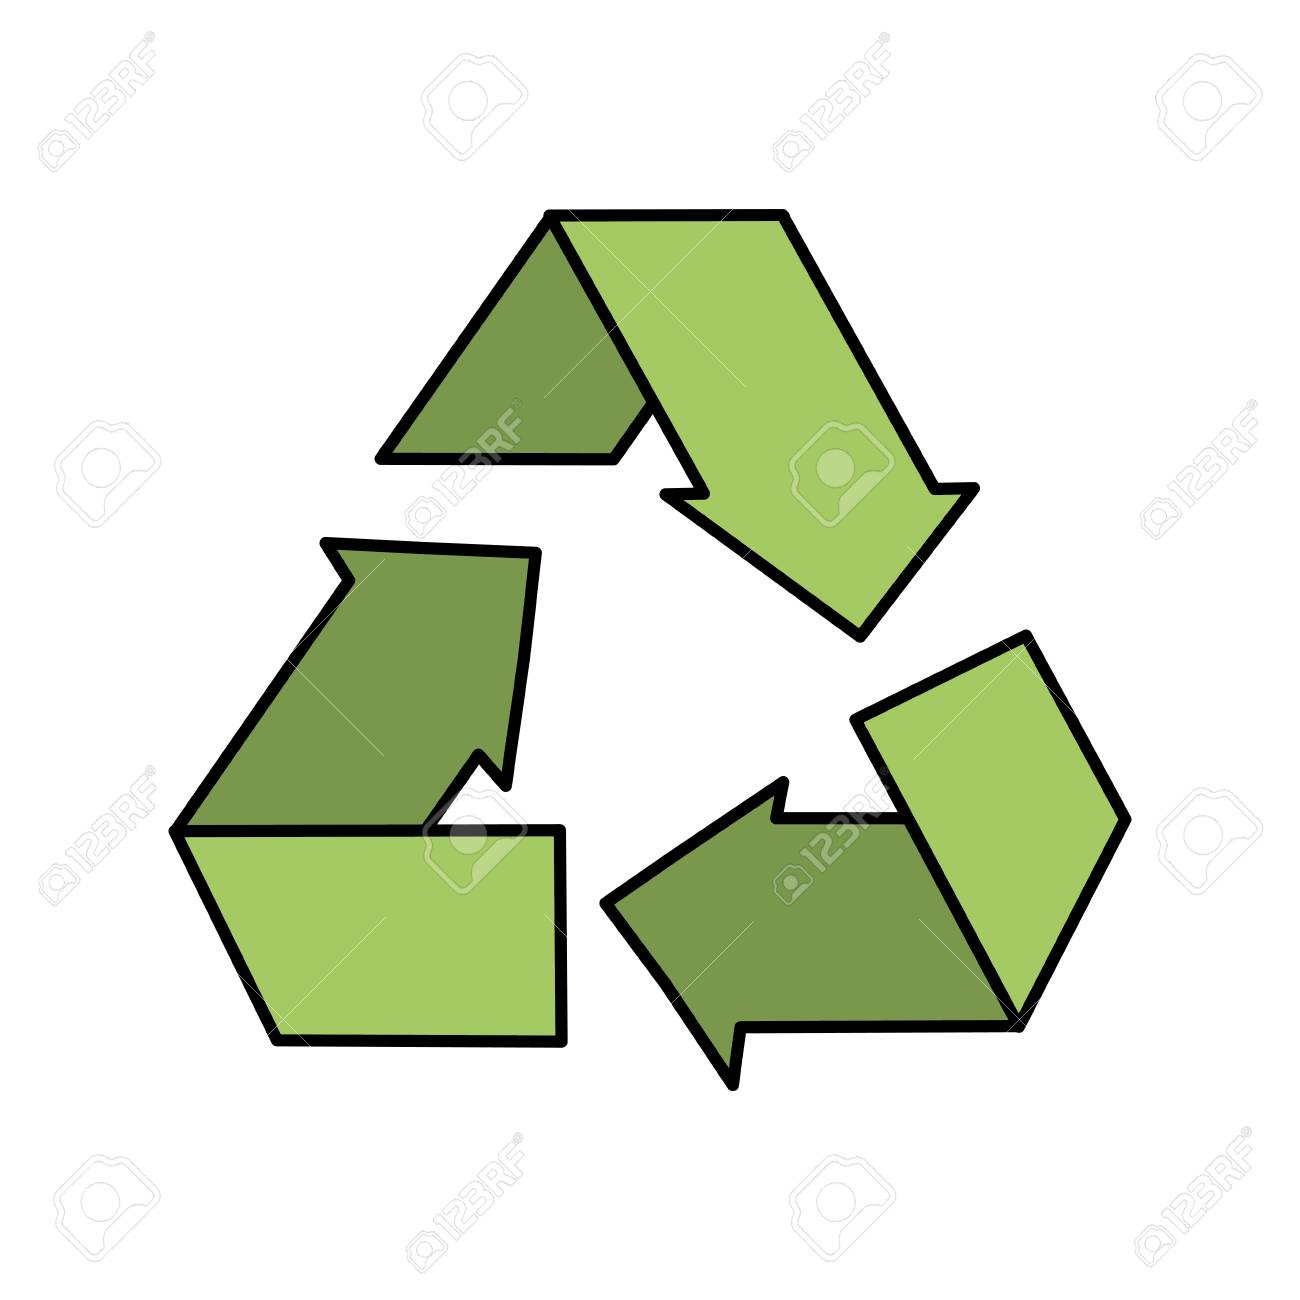 Reduce Recycle And Reuse Environment Symbol Royalty Free Cliparts